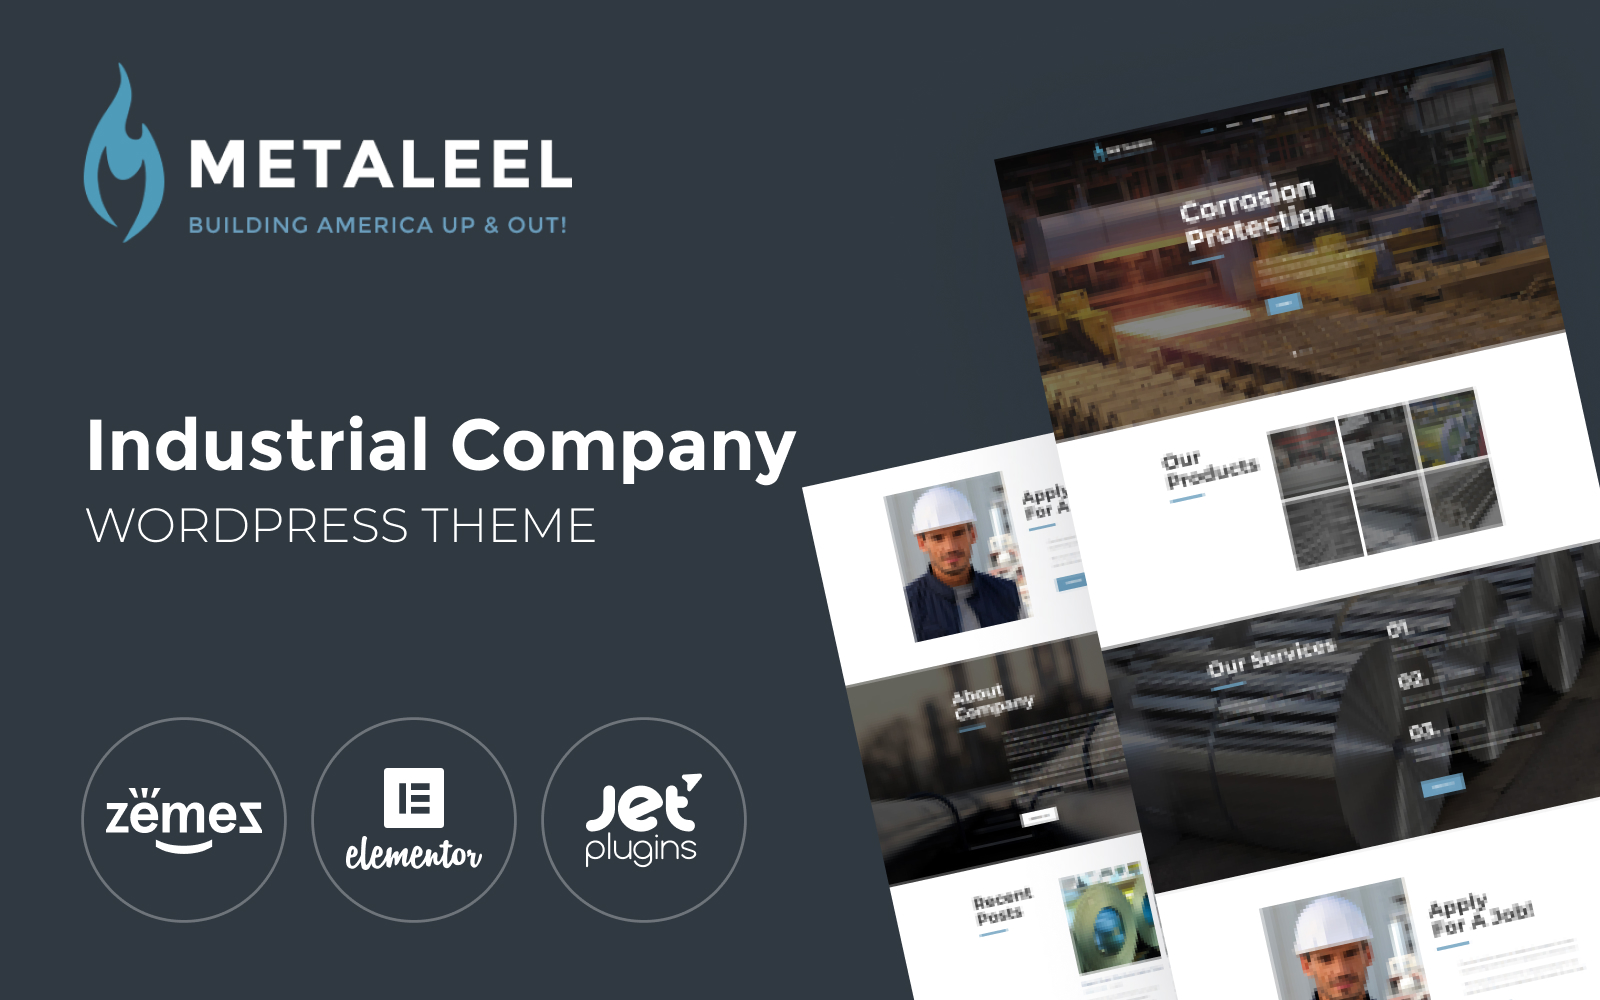 Metaleel WordPress Theme